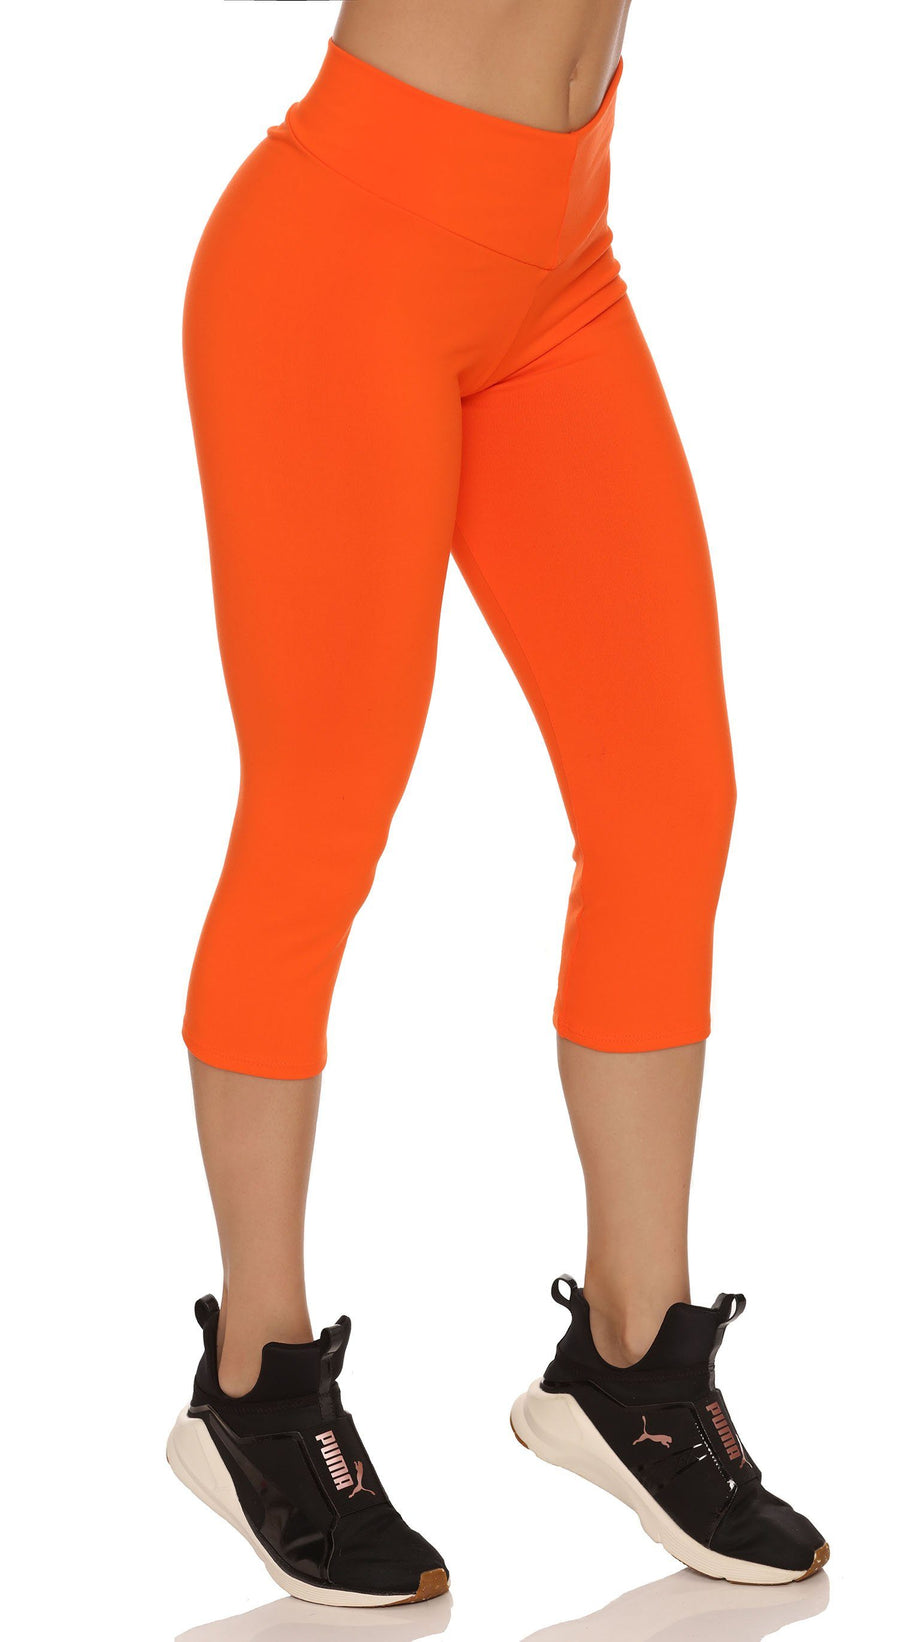 Brazilian Workout Capri Pants - Scrunch Booty Lift! Compression Orange